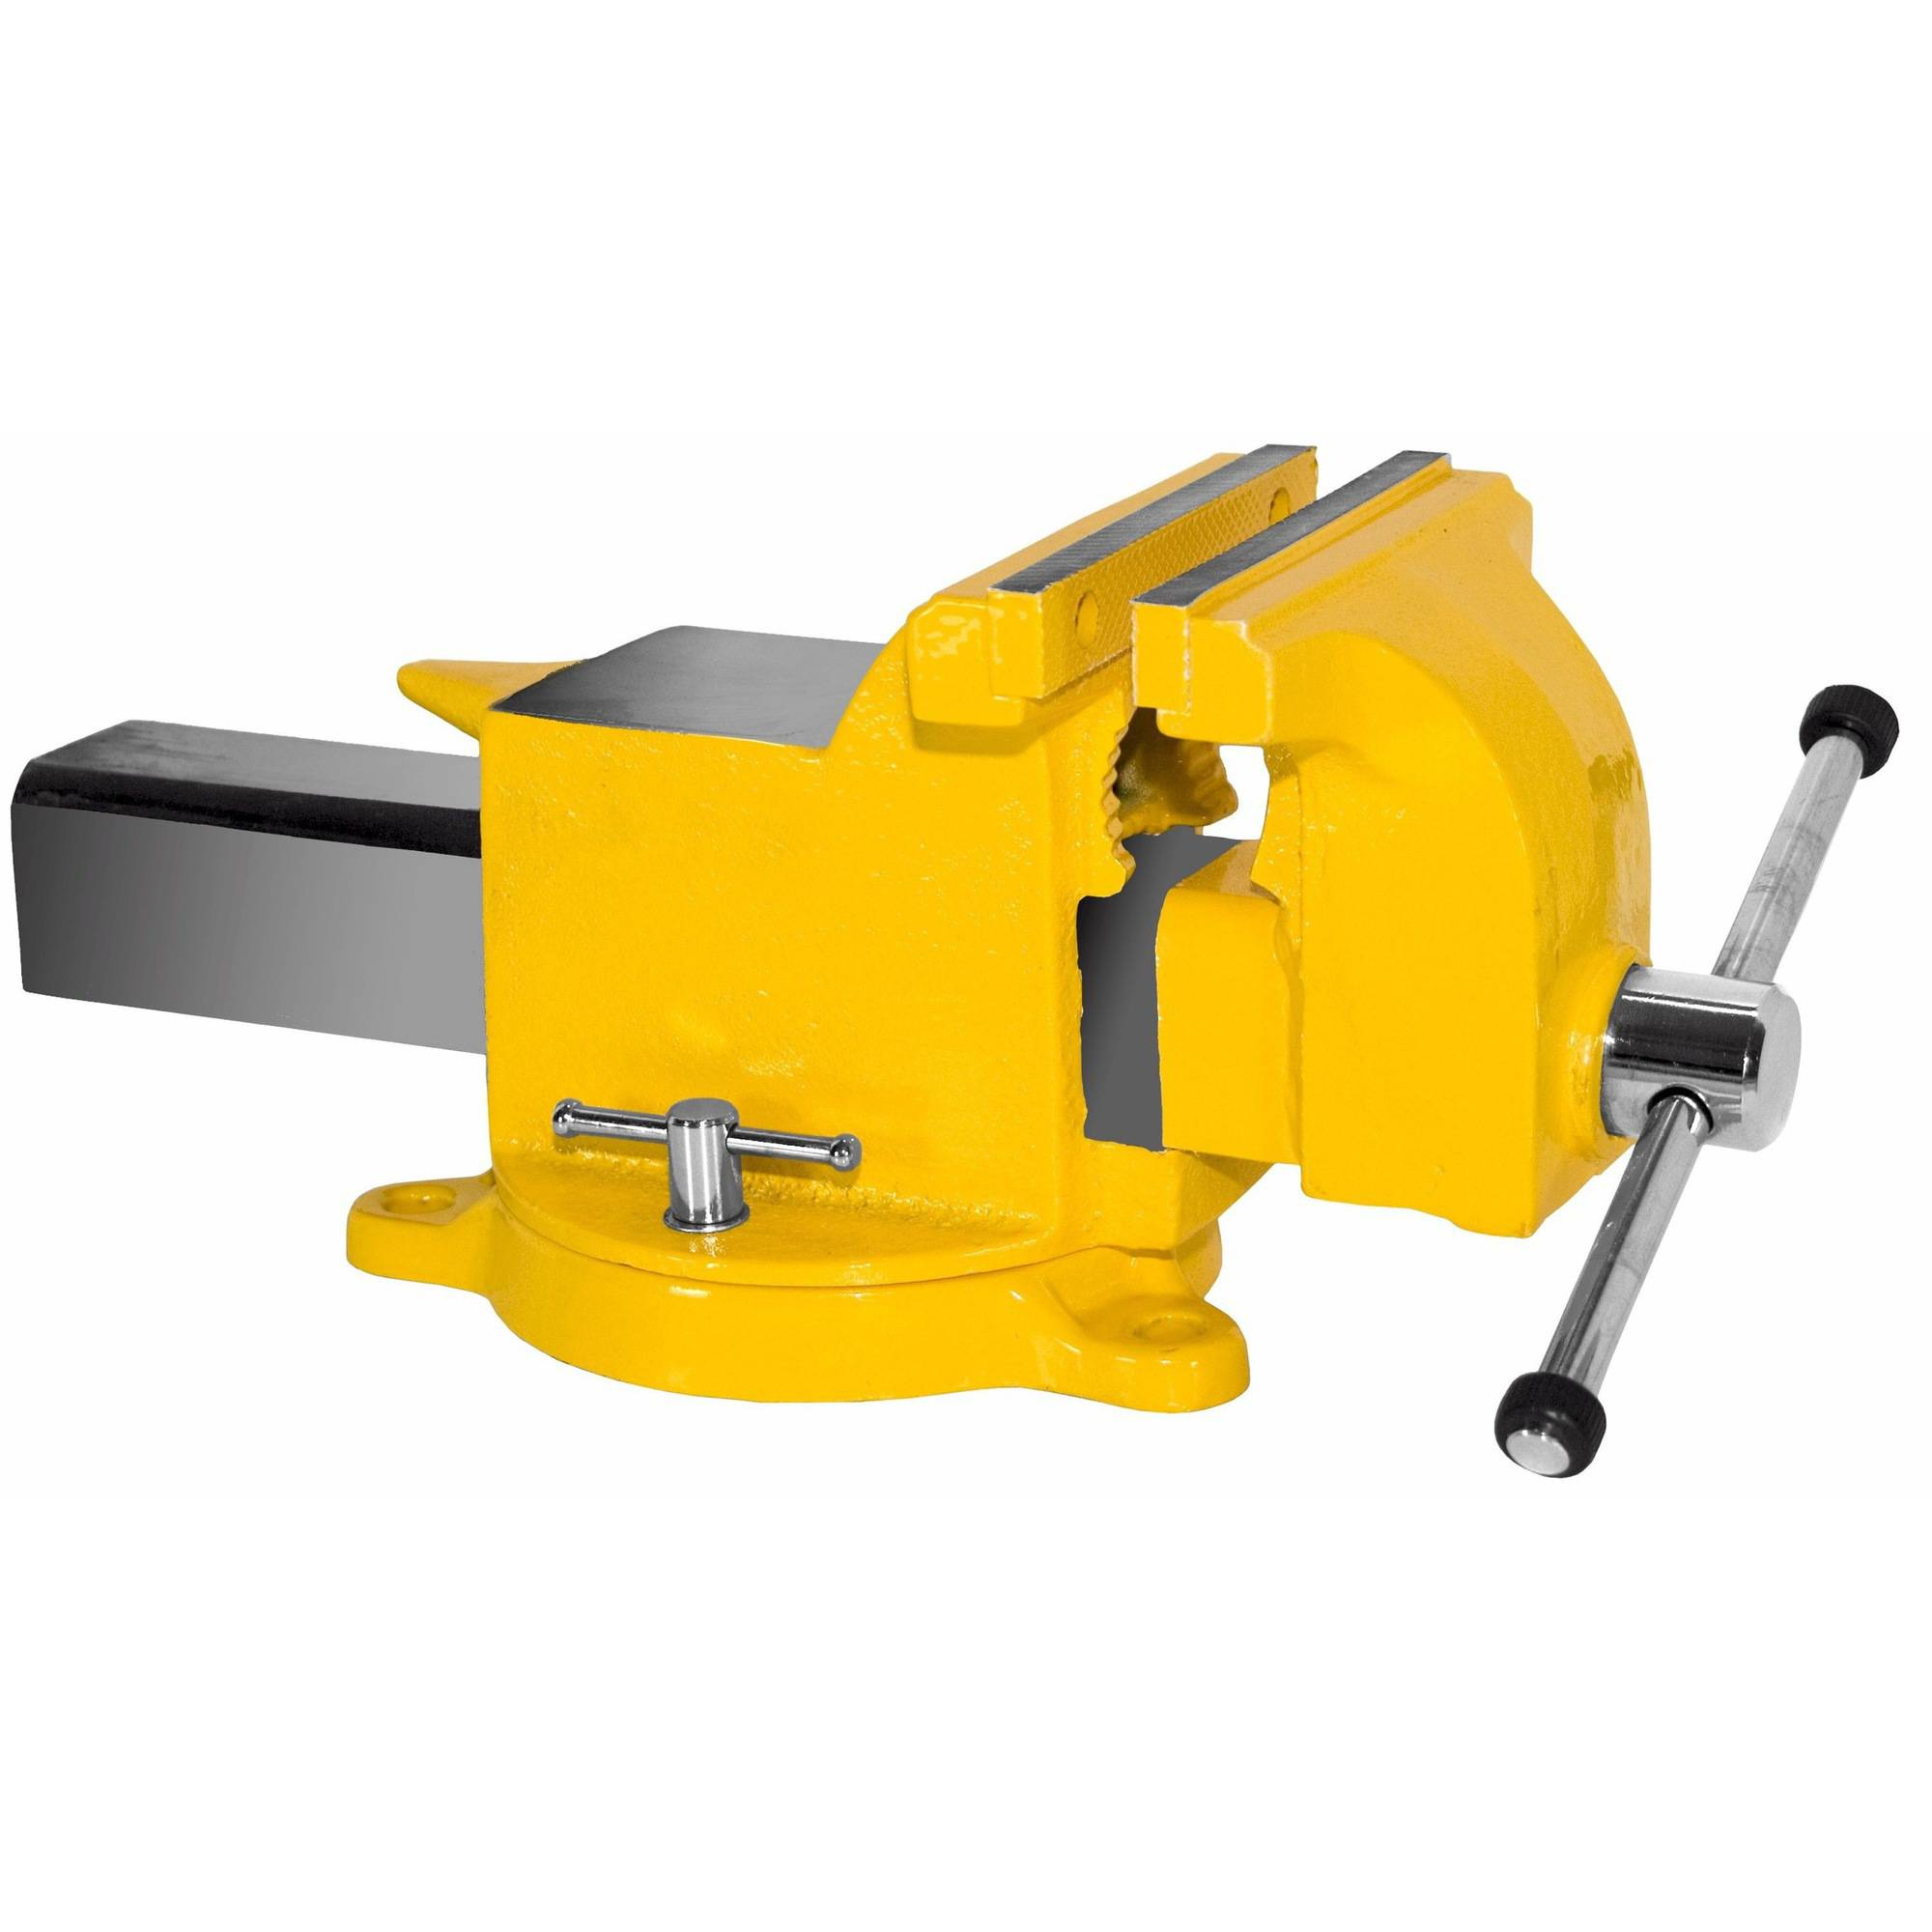 Yost 905-Hv High Visibility All Steel Utility Combination Pipe and Bench Vise by Yost Vises